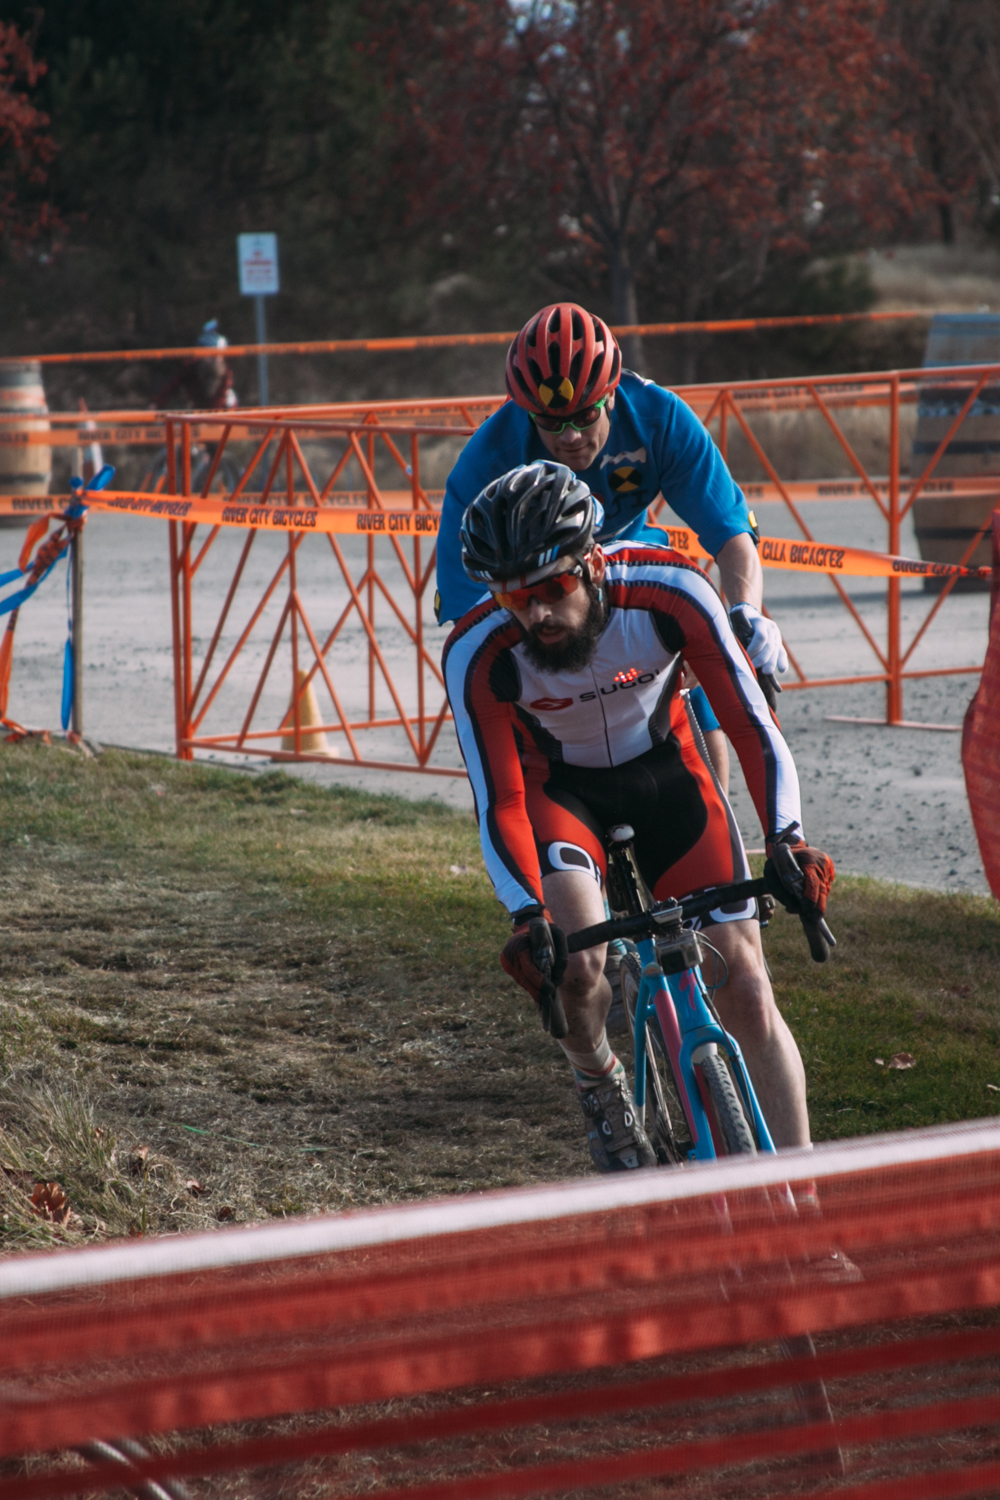 Cyclocross18_CCCX-Bend-Day2-296-fransencomesalive.jpg